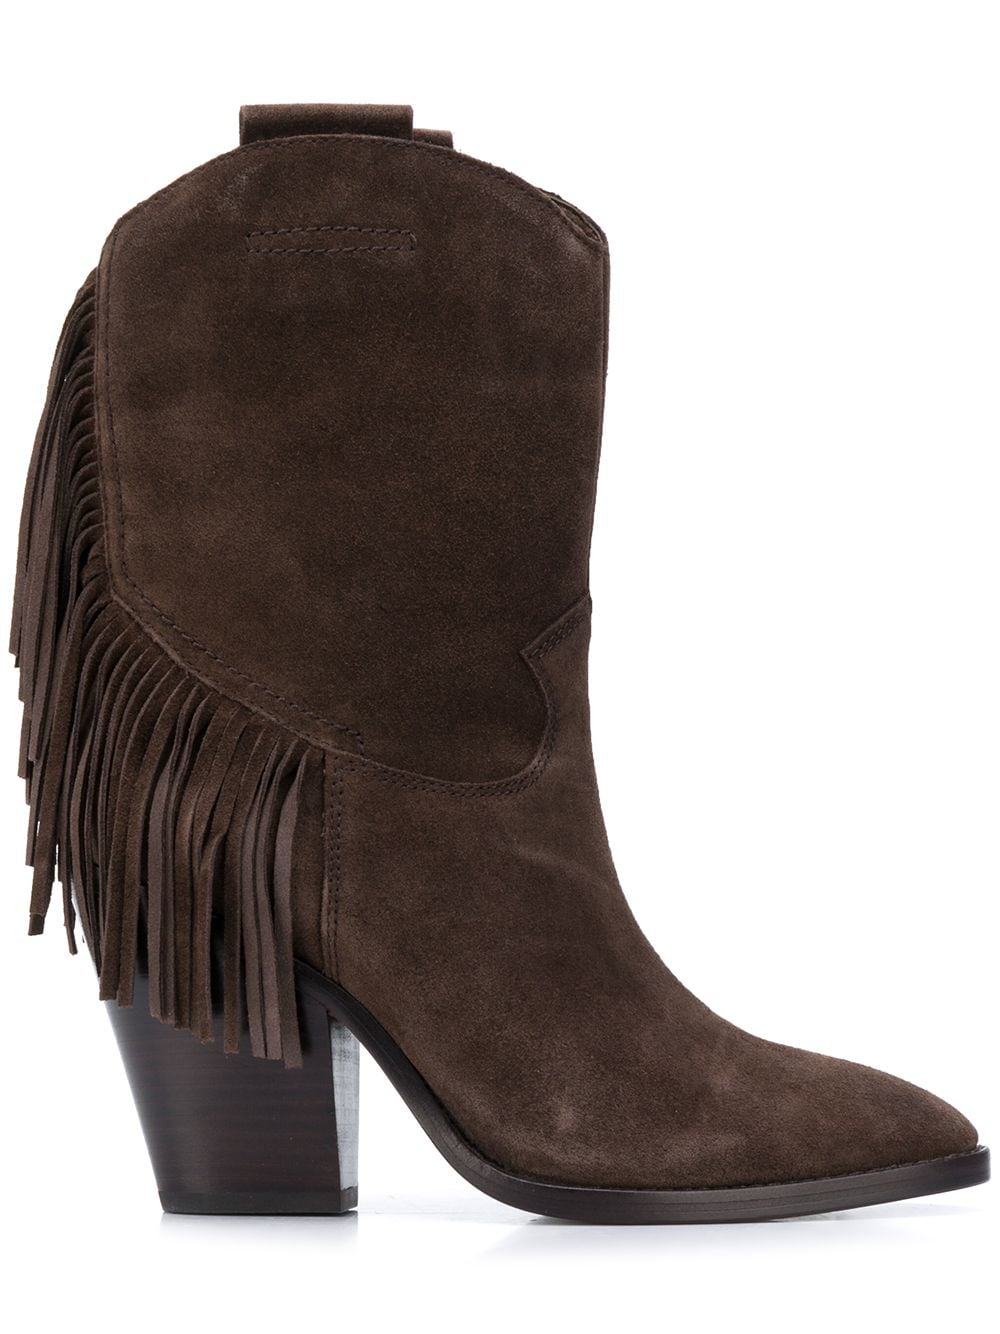 Emotion Bis Ankle Boots